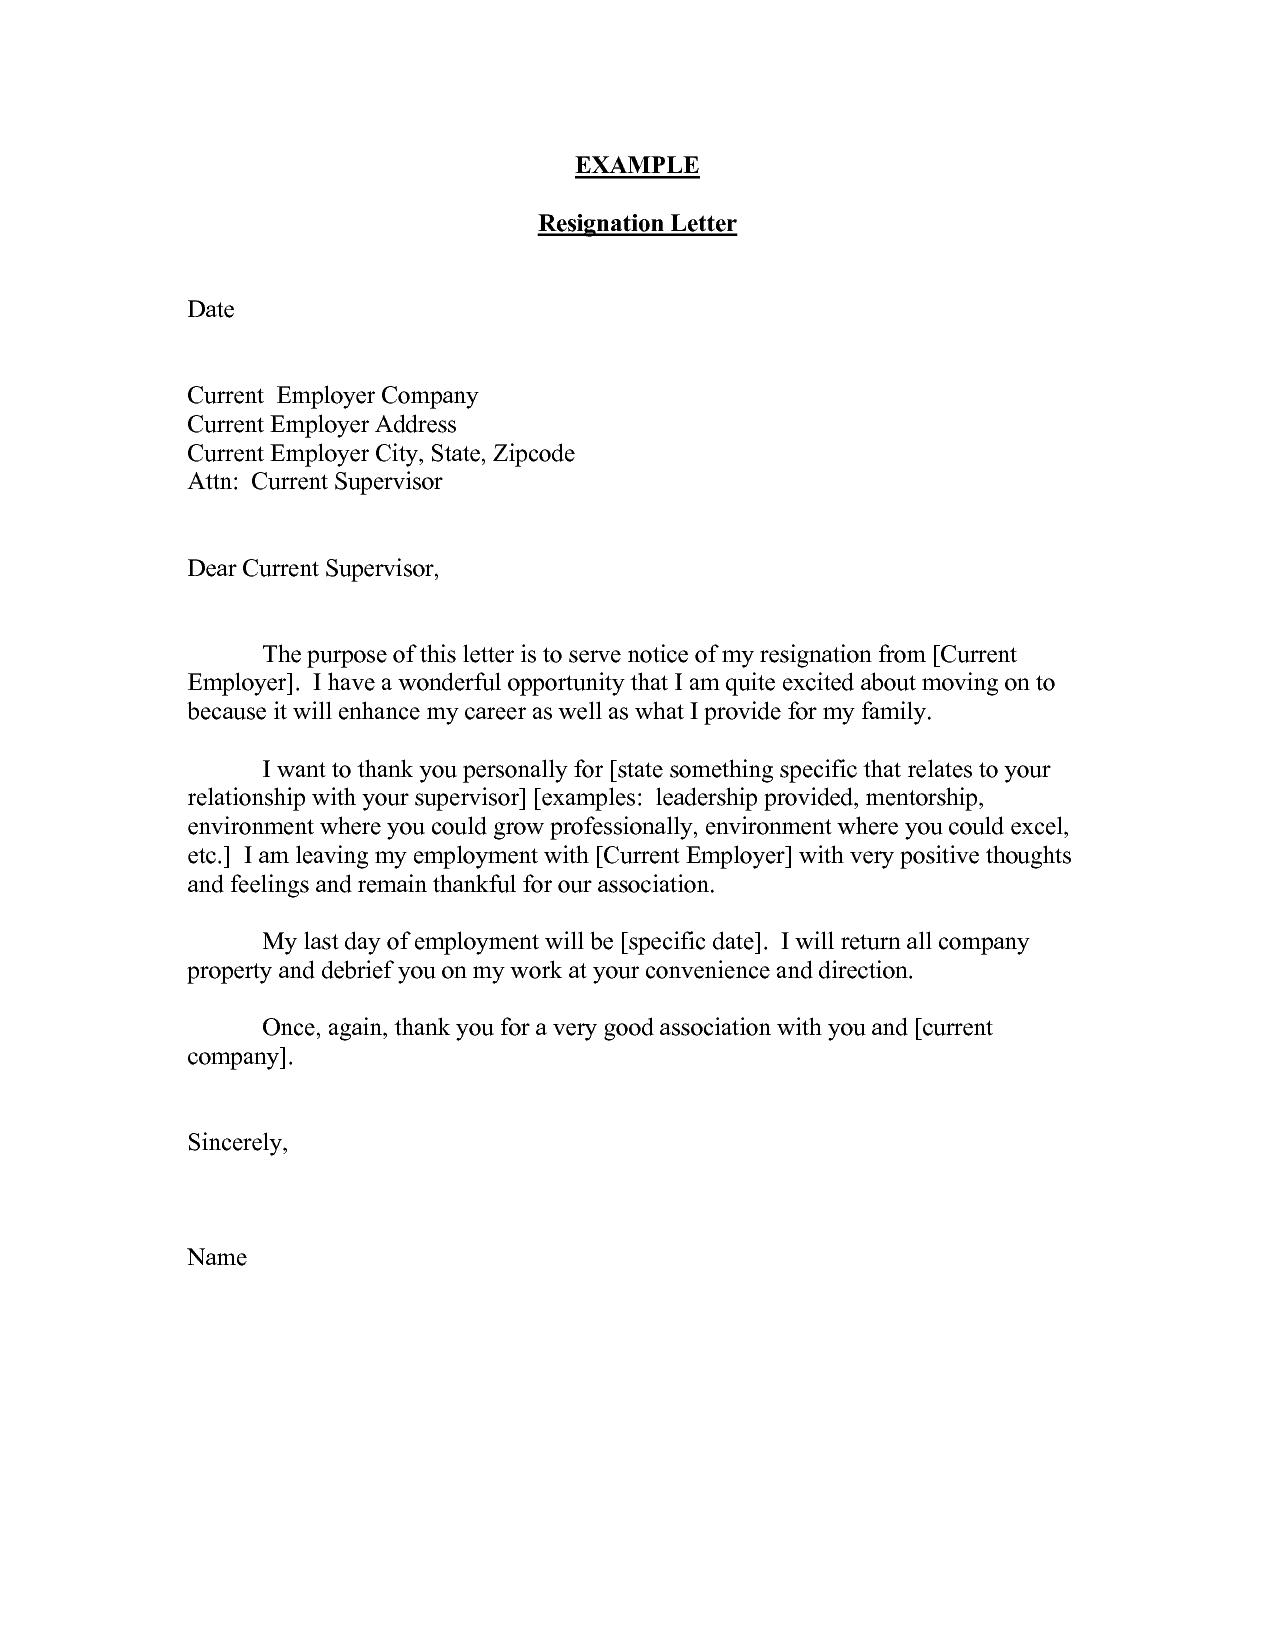 Resignation Letter Sample Doc Resume And Letter SampleWriting A ...